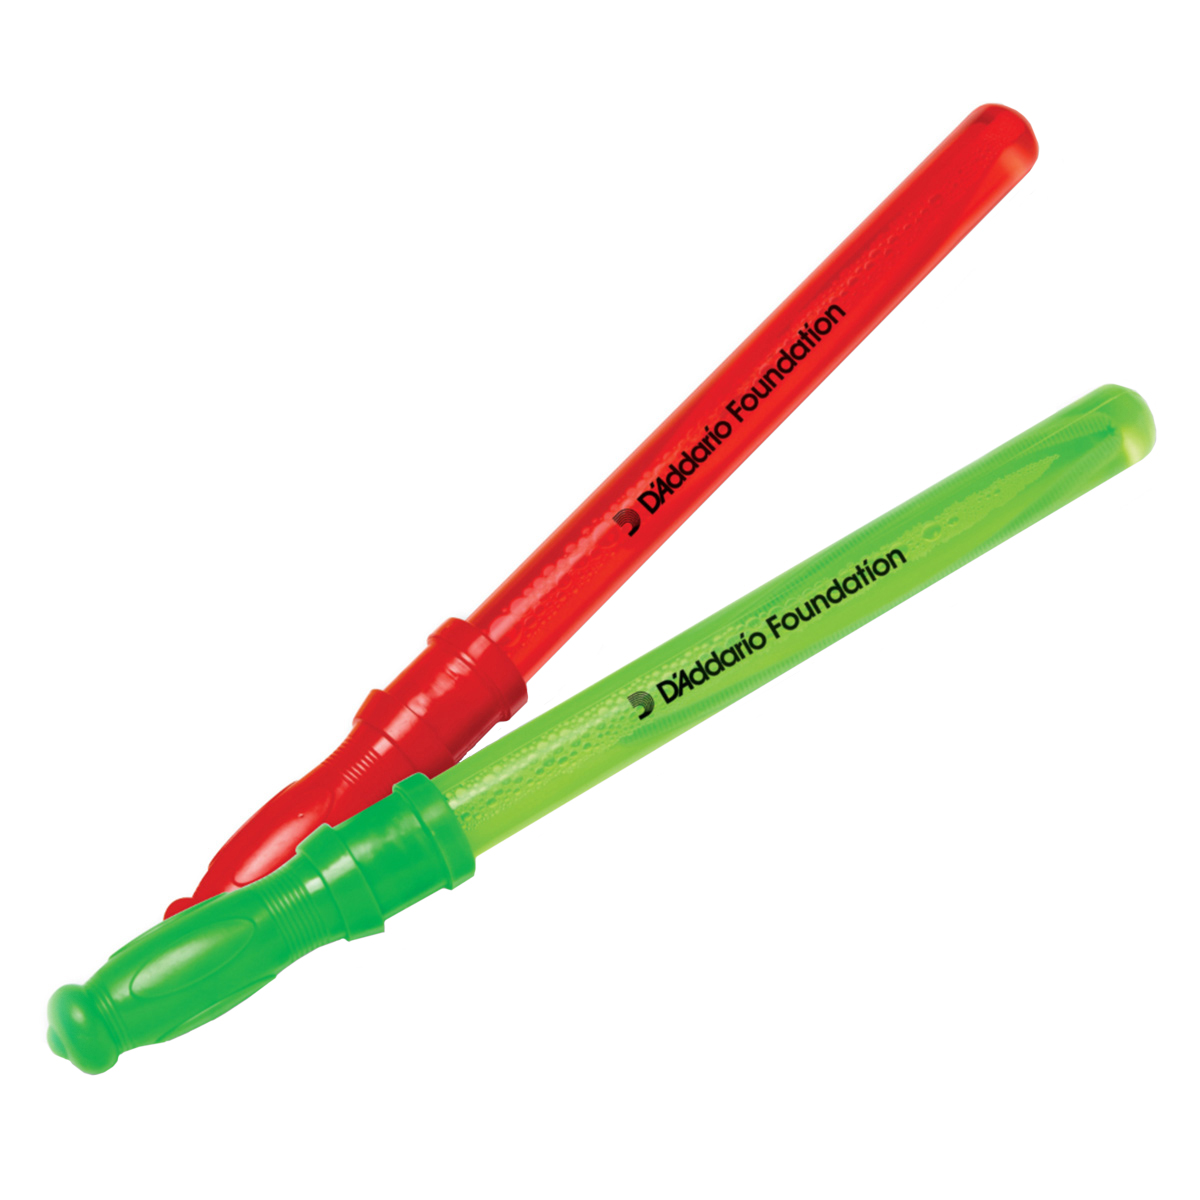 XL Bubble Wand in Red and Green Holiday Assortment